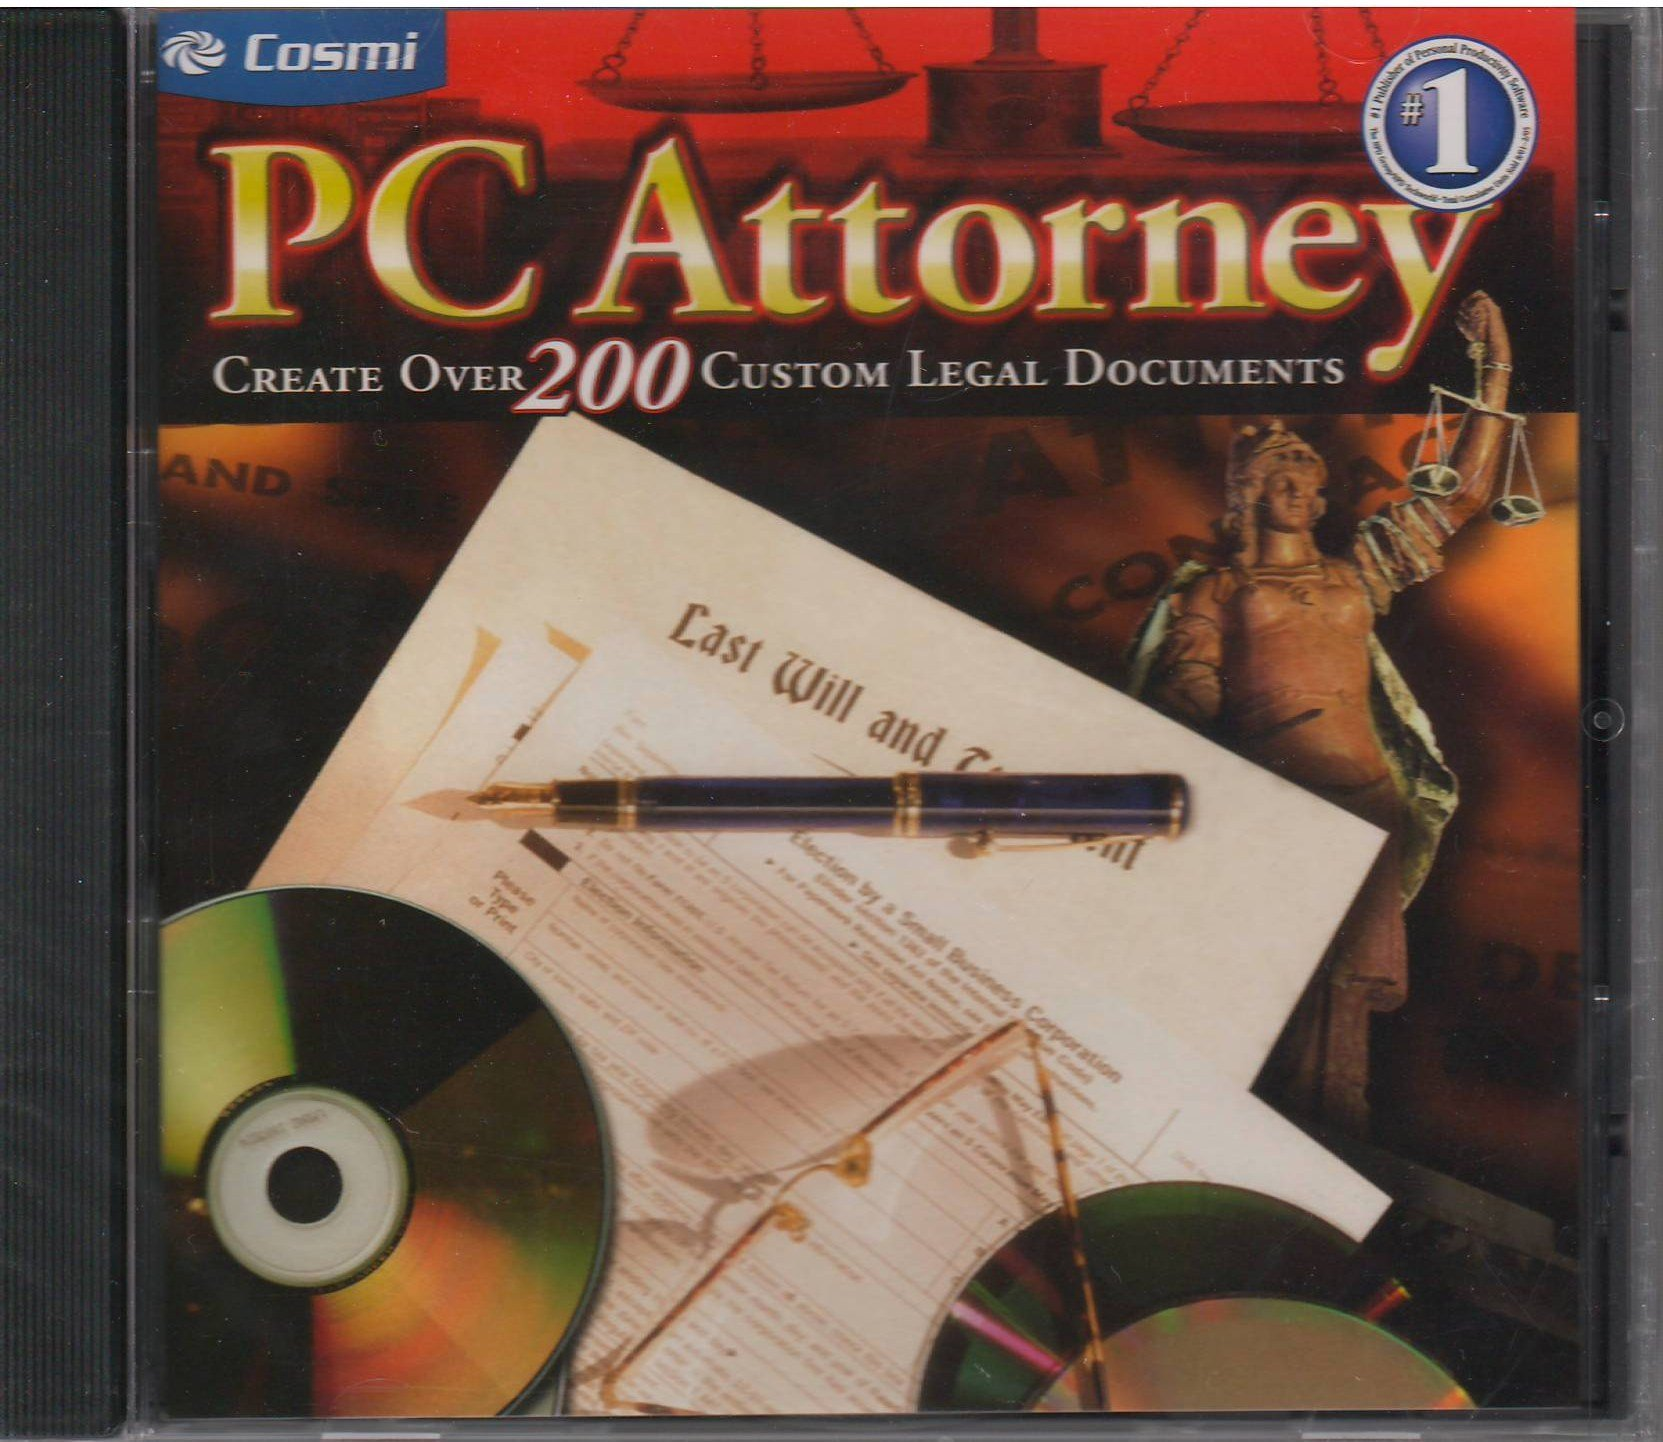 PC Attorney by COSMI